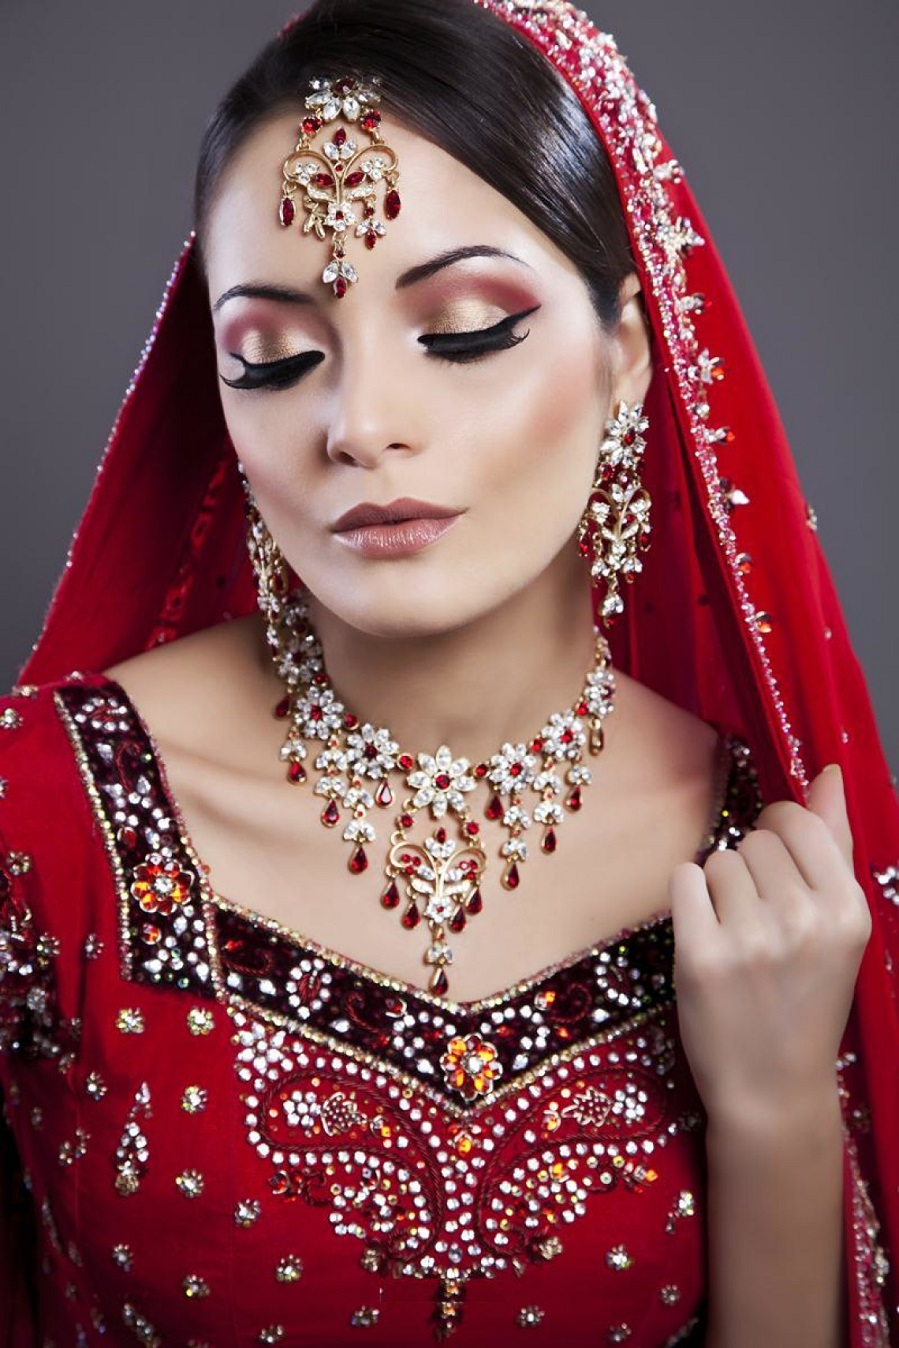 Wedding Makeup Ideas: Essential Makeup Tips Every Bride Needs On Her Wedding Day